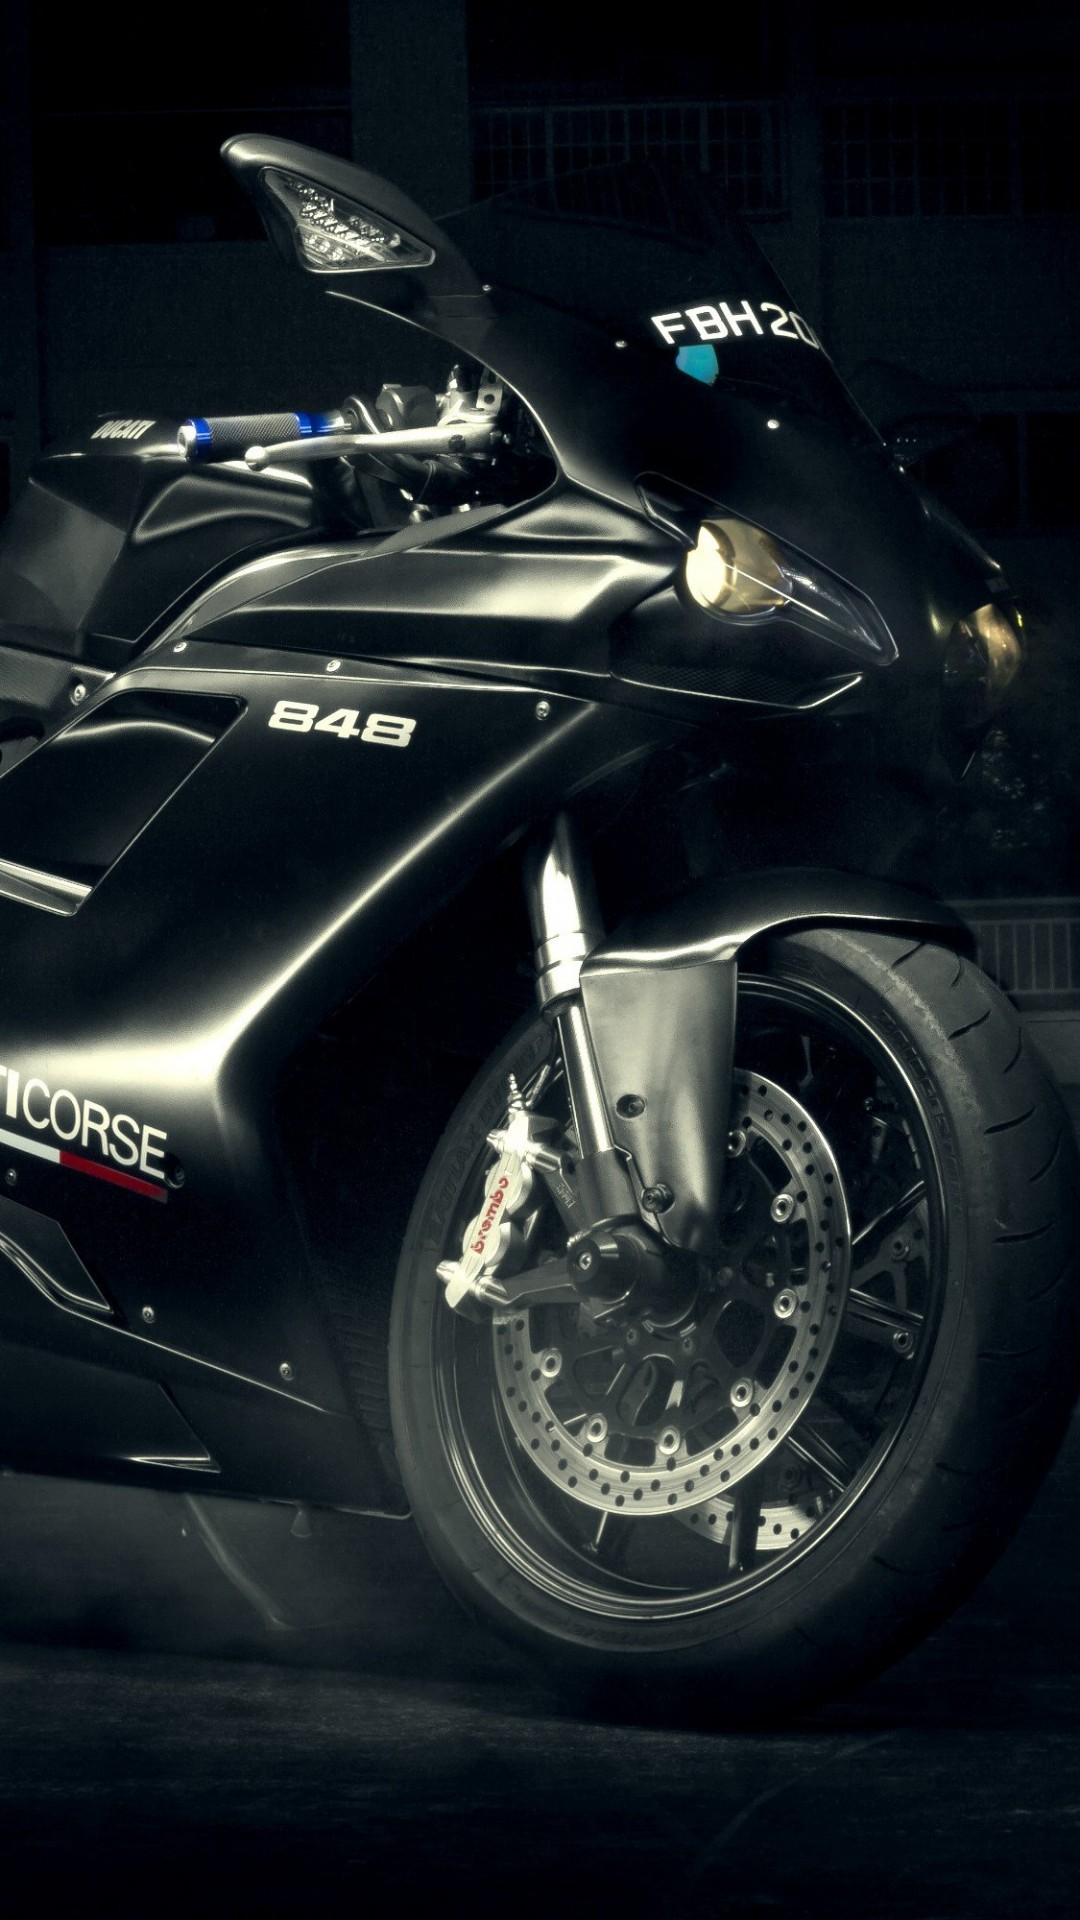 Ducati 848 Wallpaper for LG G2